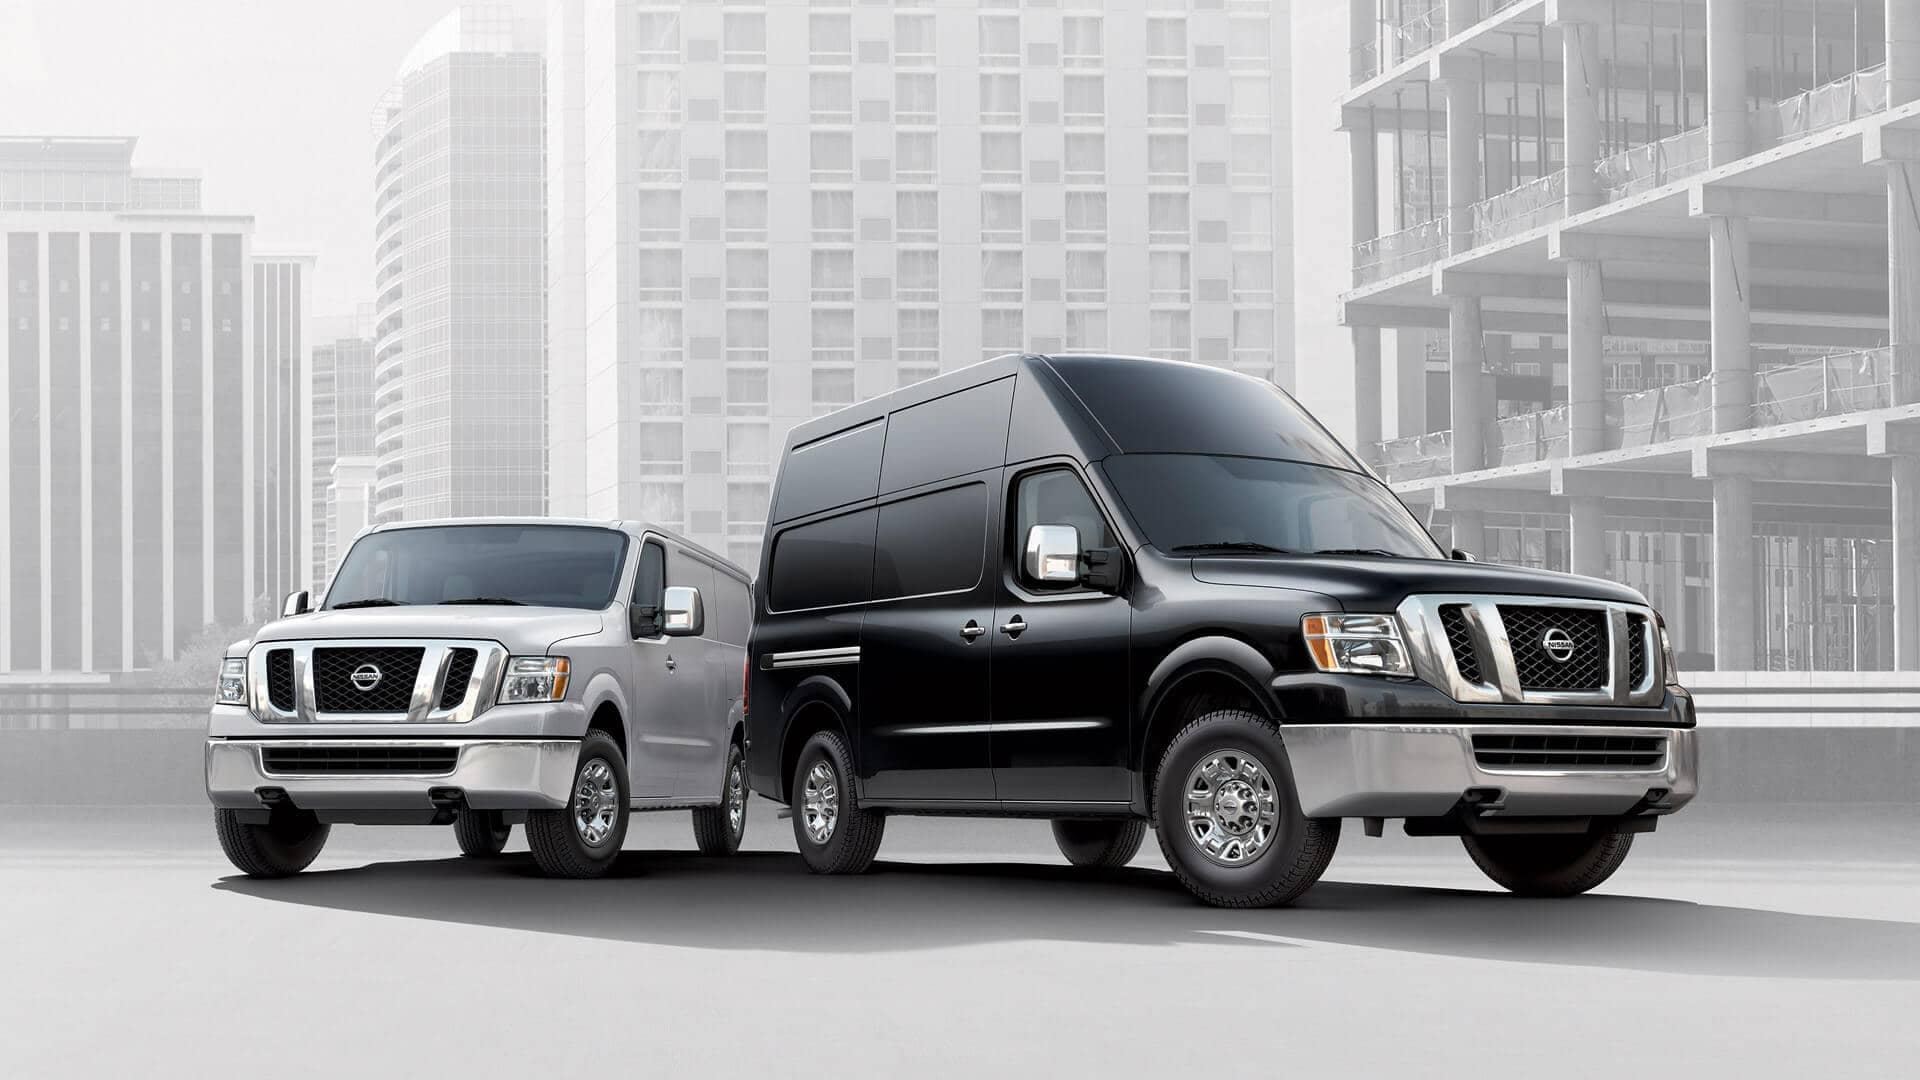 2020 Nissan NV Cargos with buildings undergoing construction behind them